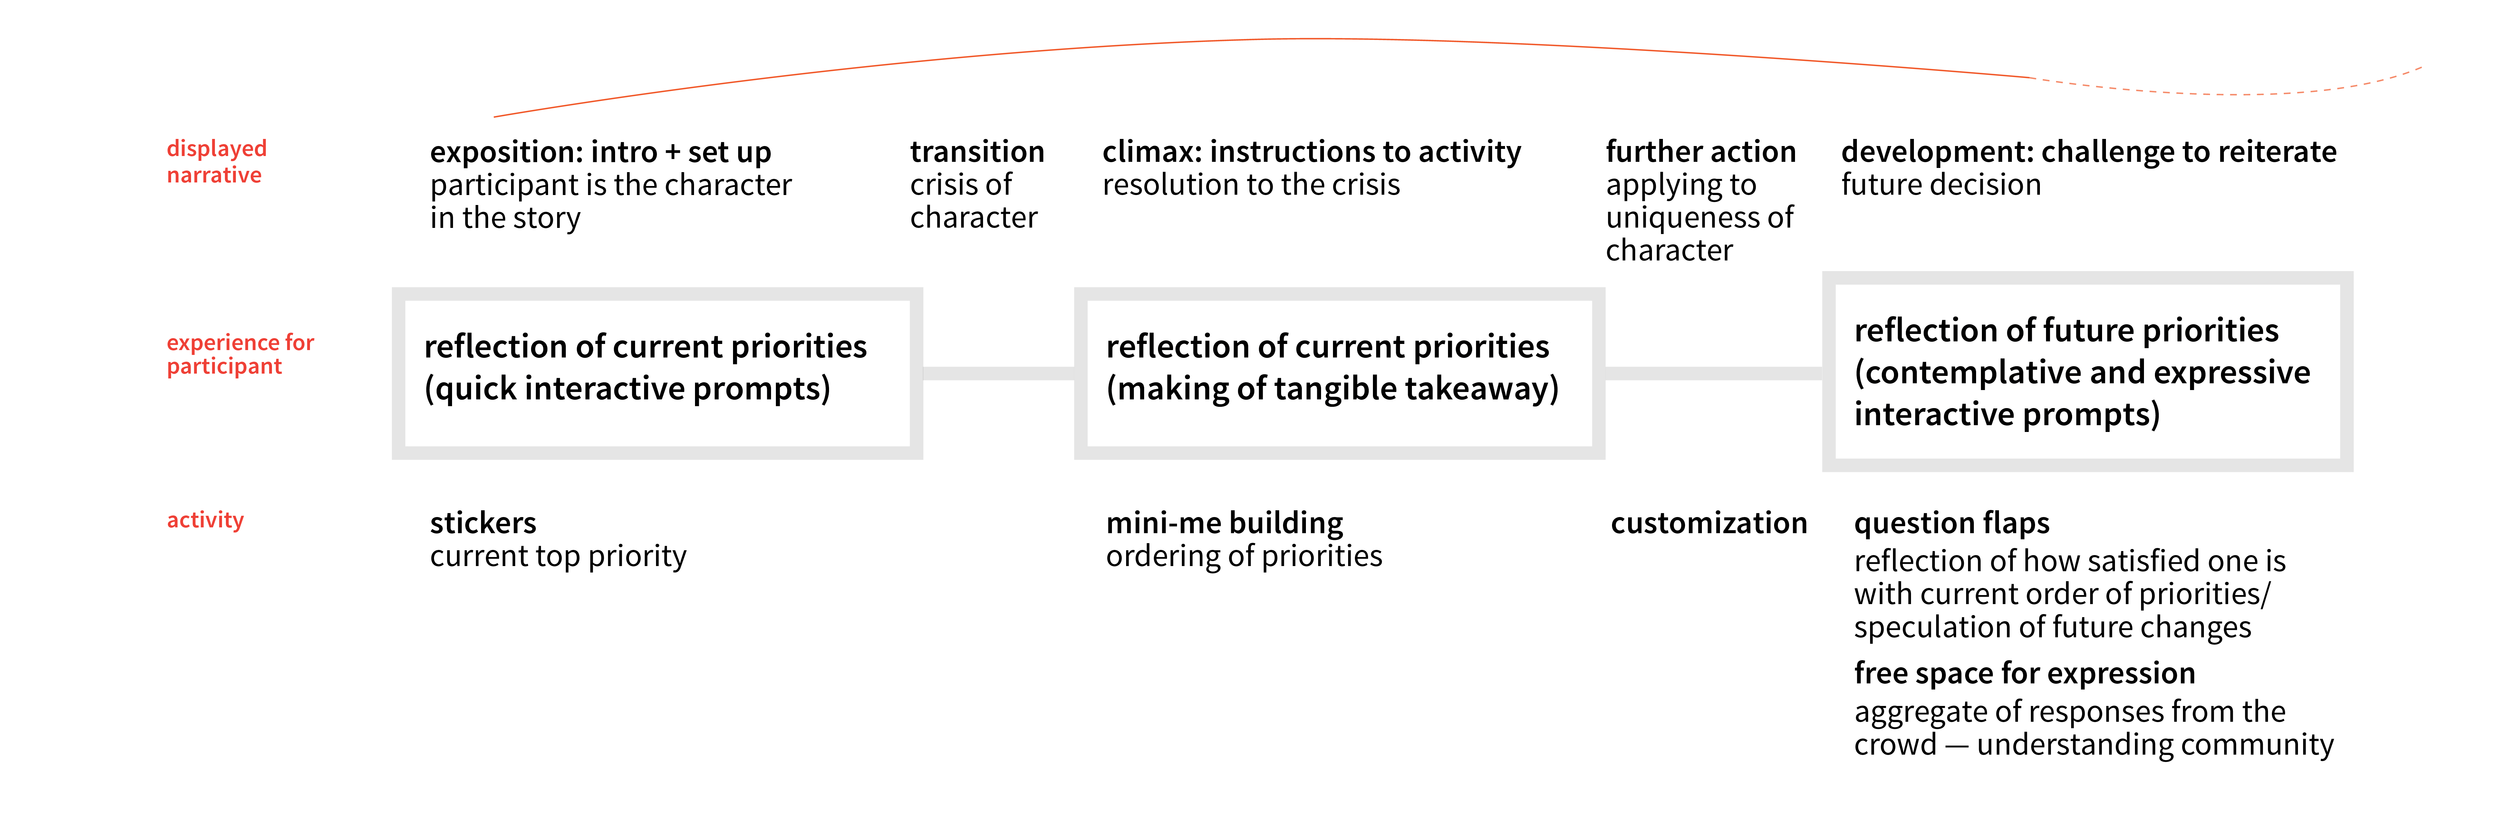 Design of overall narrative arc and experience